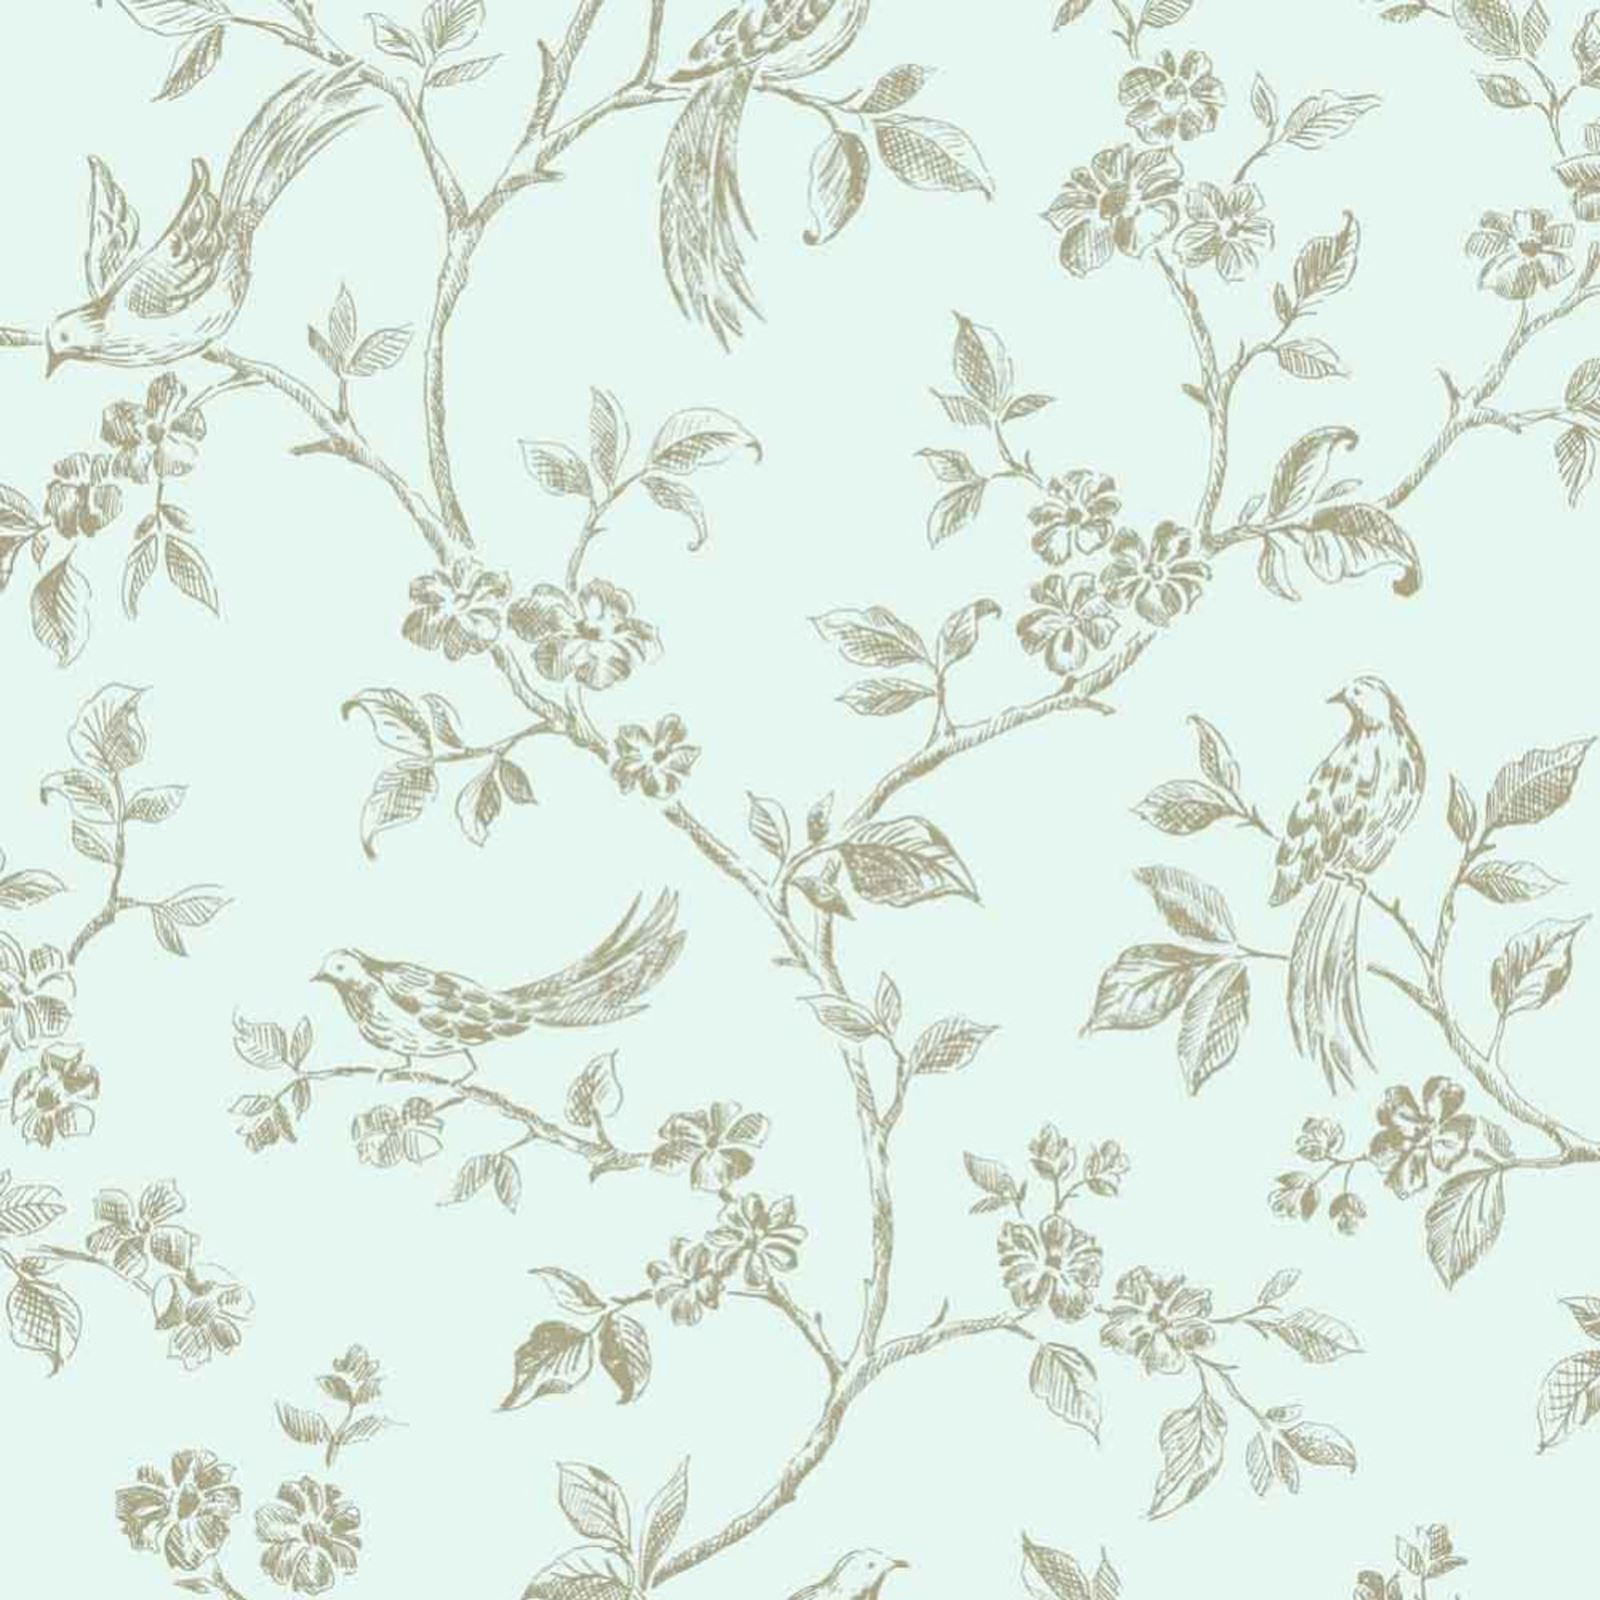 Teal Duck Egg Wallpaper Designs By Fine Decor